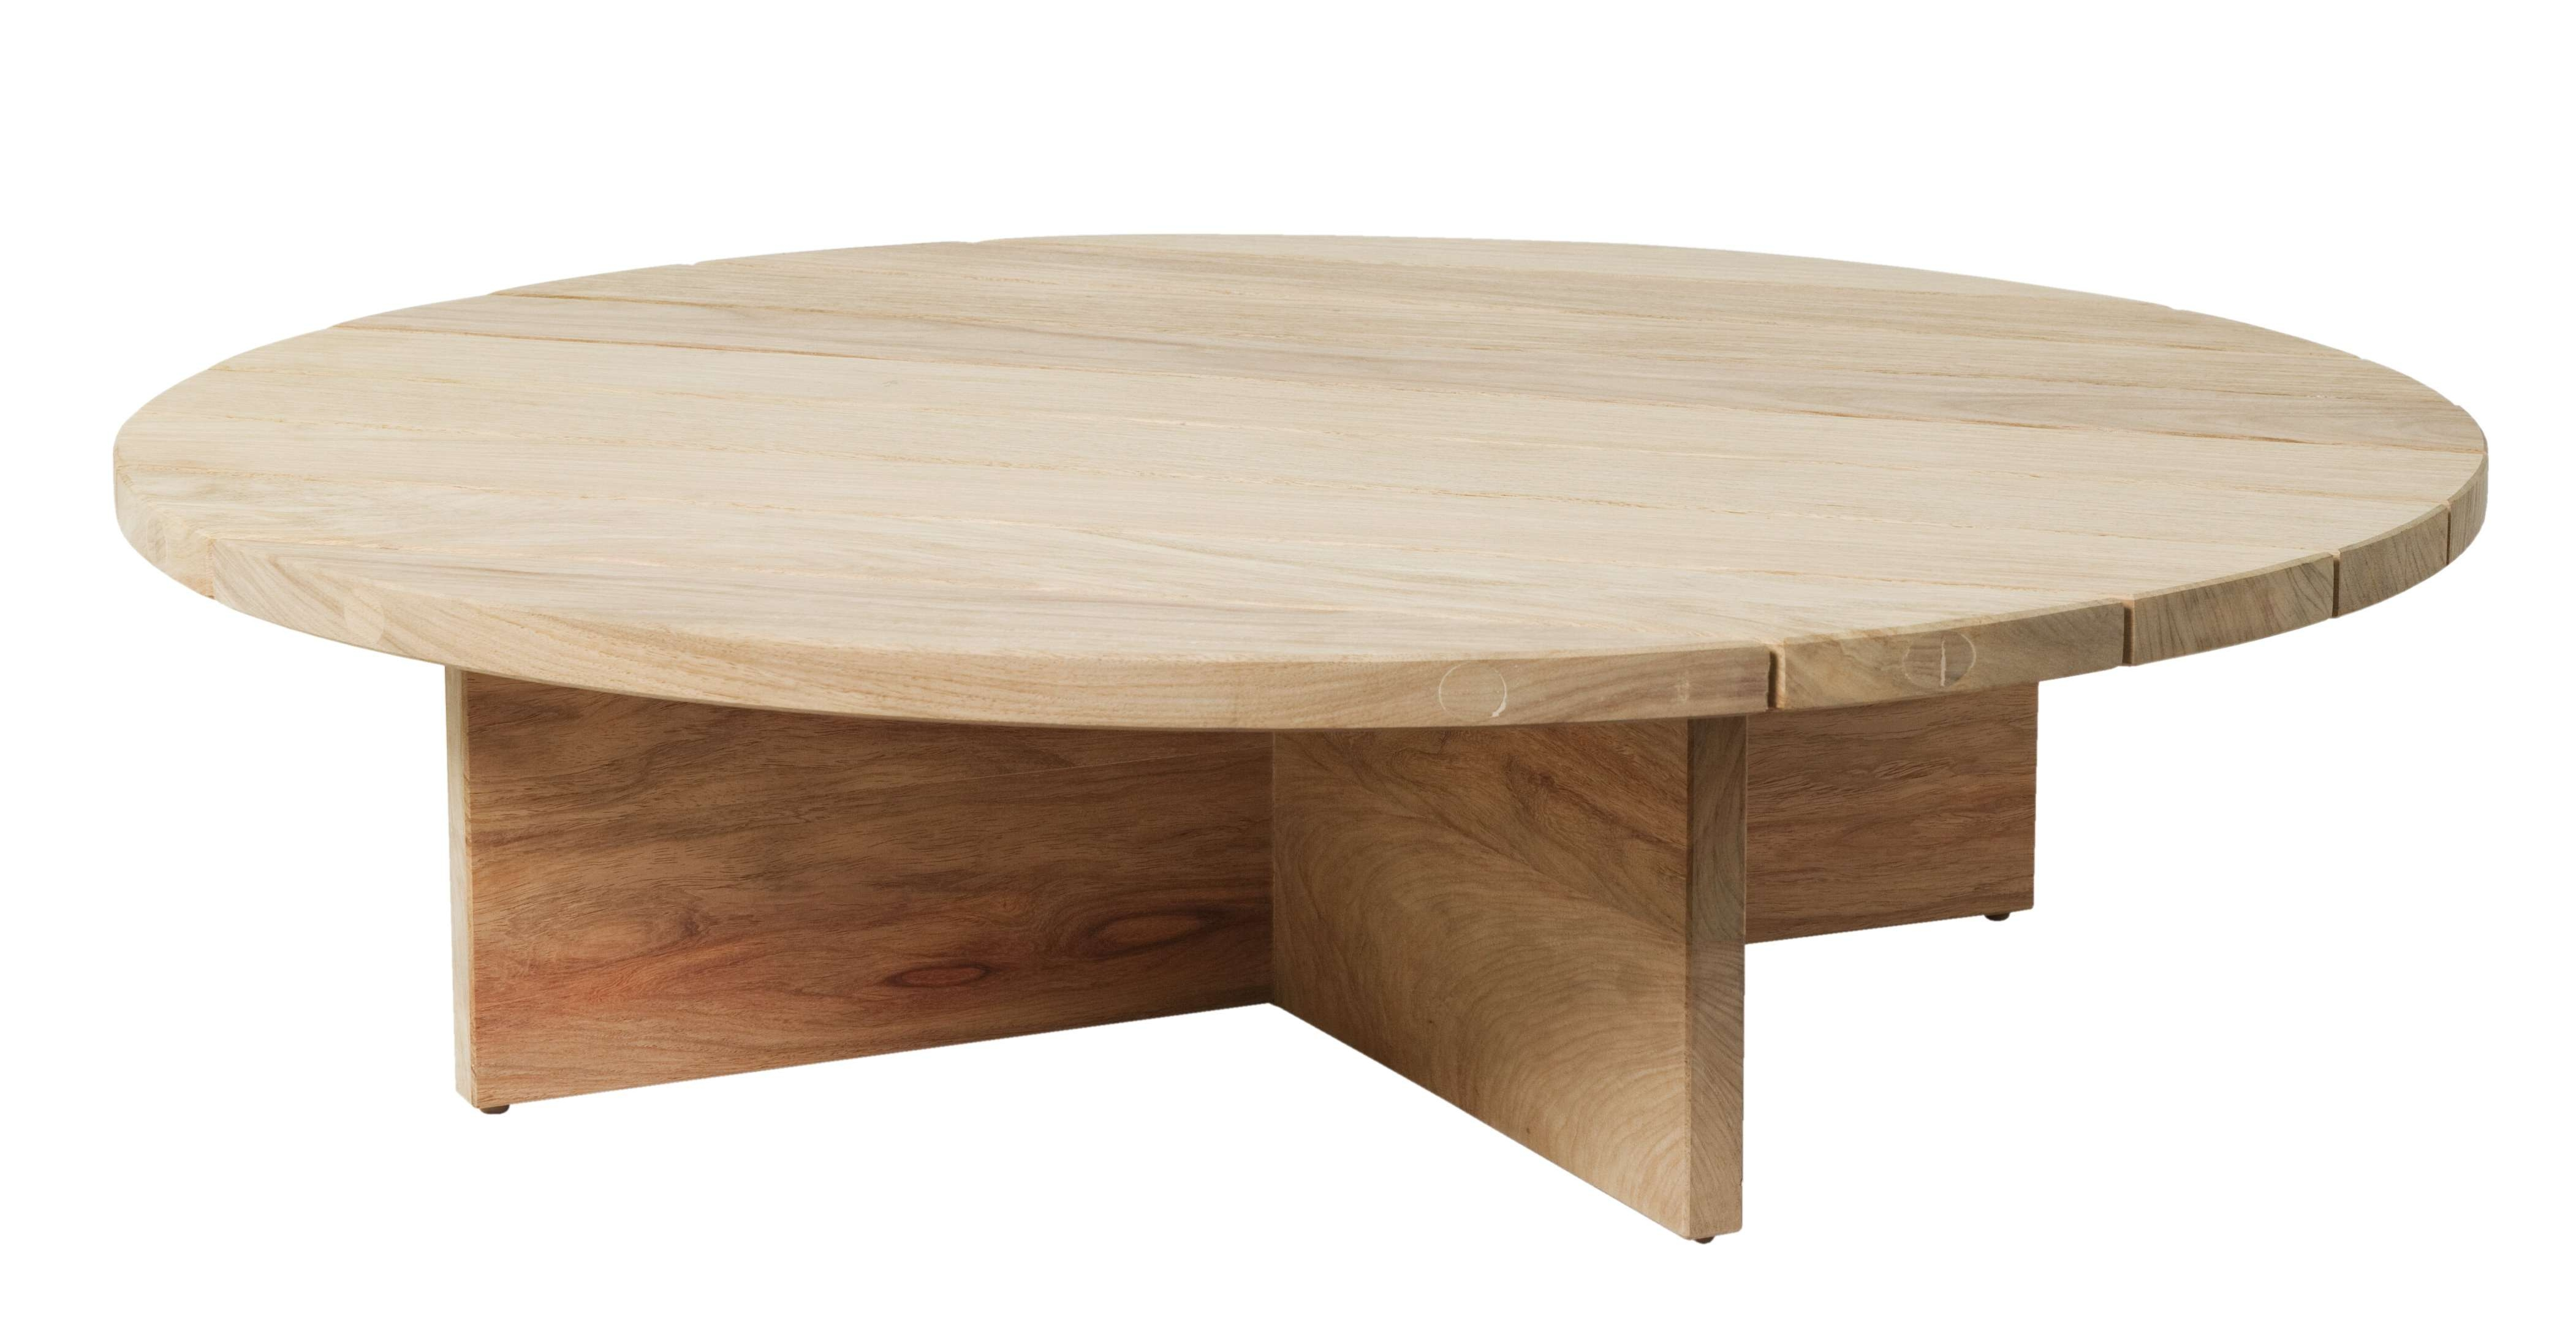 Coffee Tables : Table Coffee Cream With Glass Top Large Round Wood With Regard To Favorite Large Low Coffee Tables (View 17 of 20)